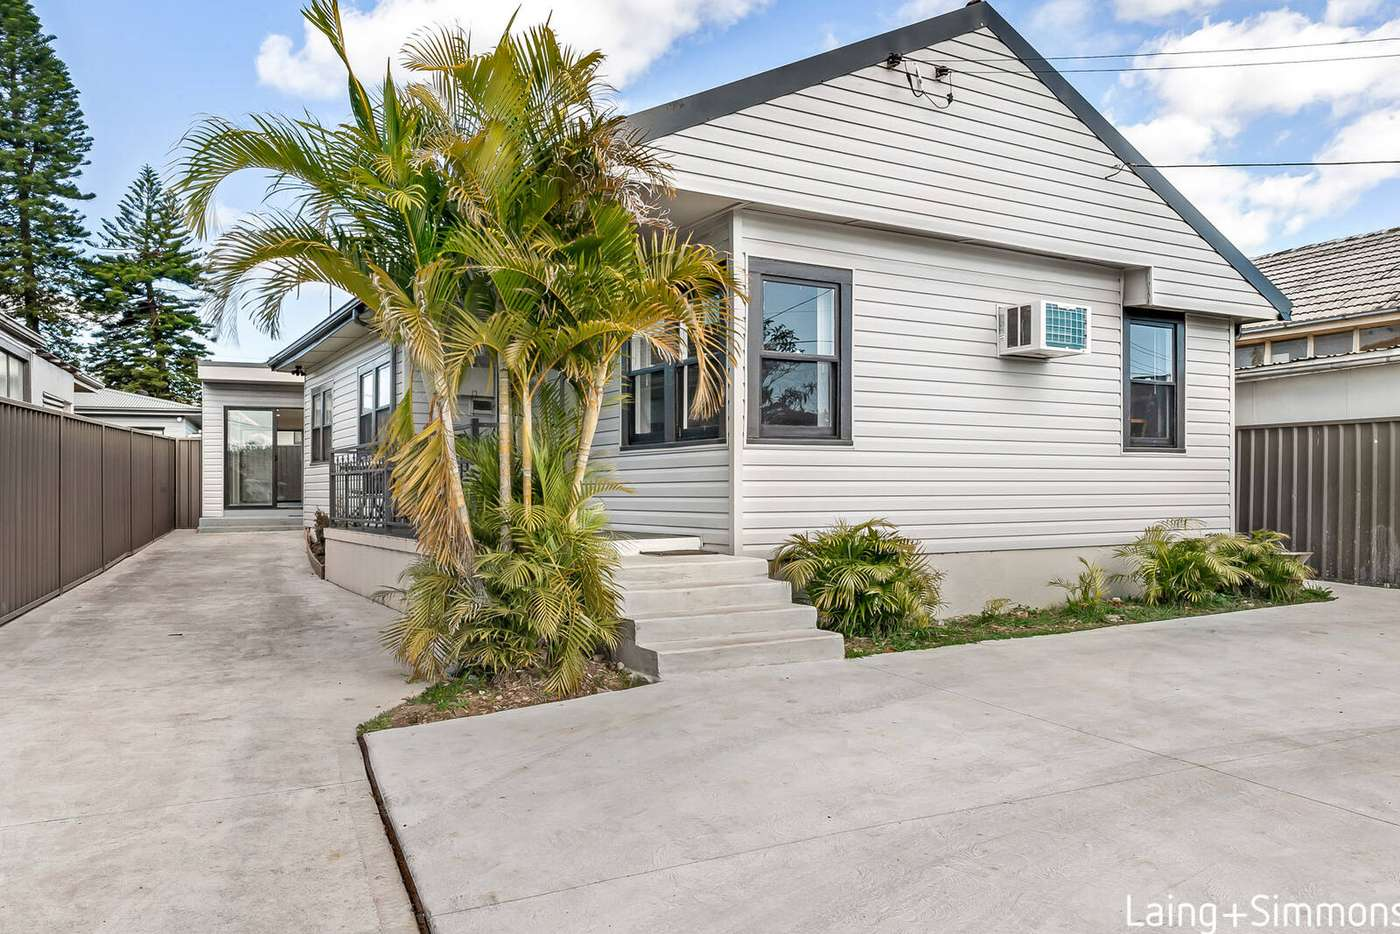 Main view of Homely house listing, 14 Miller Street, Granville NSW 2142